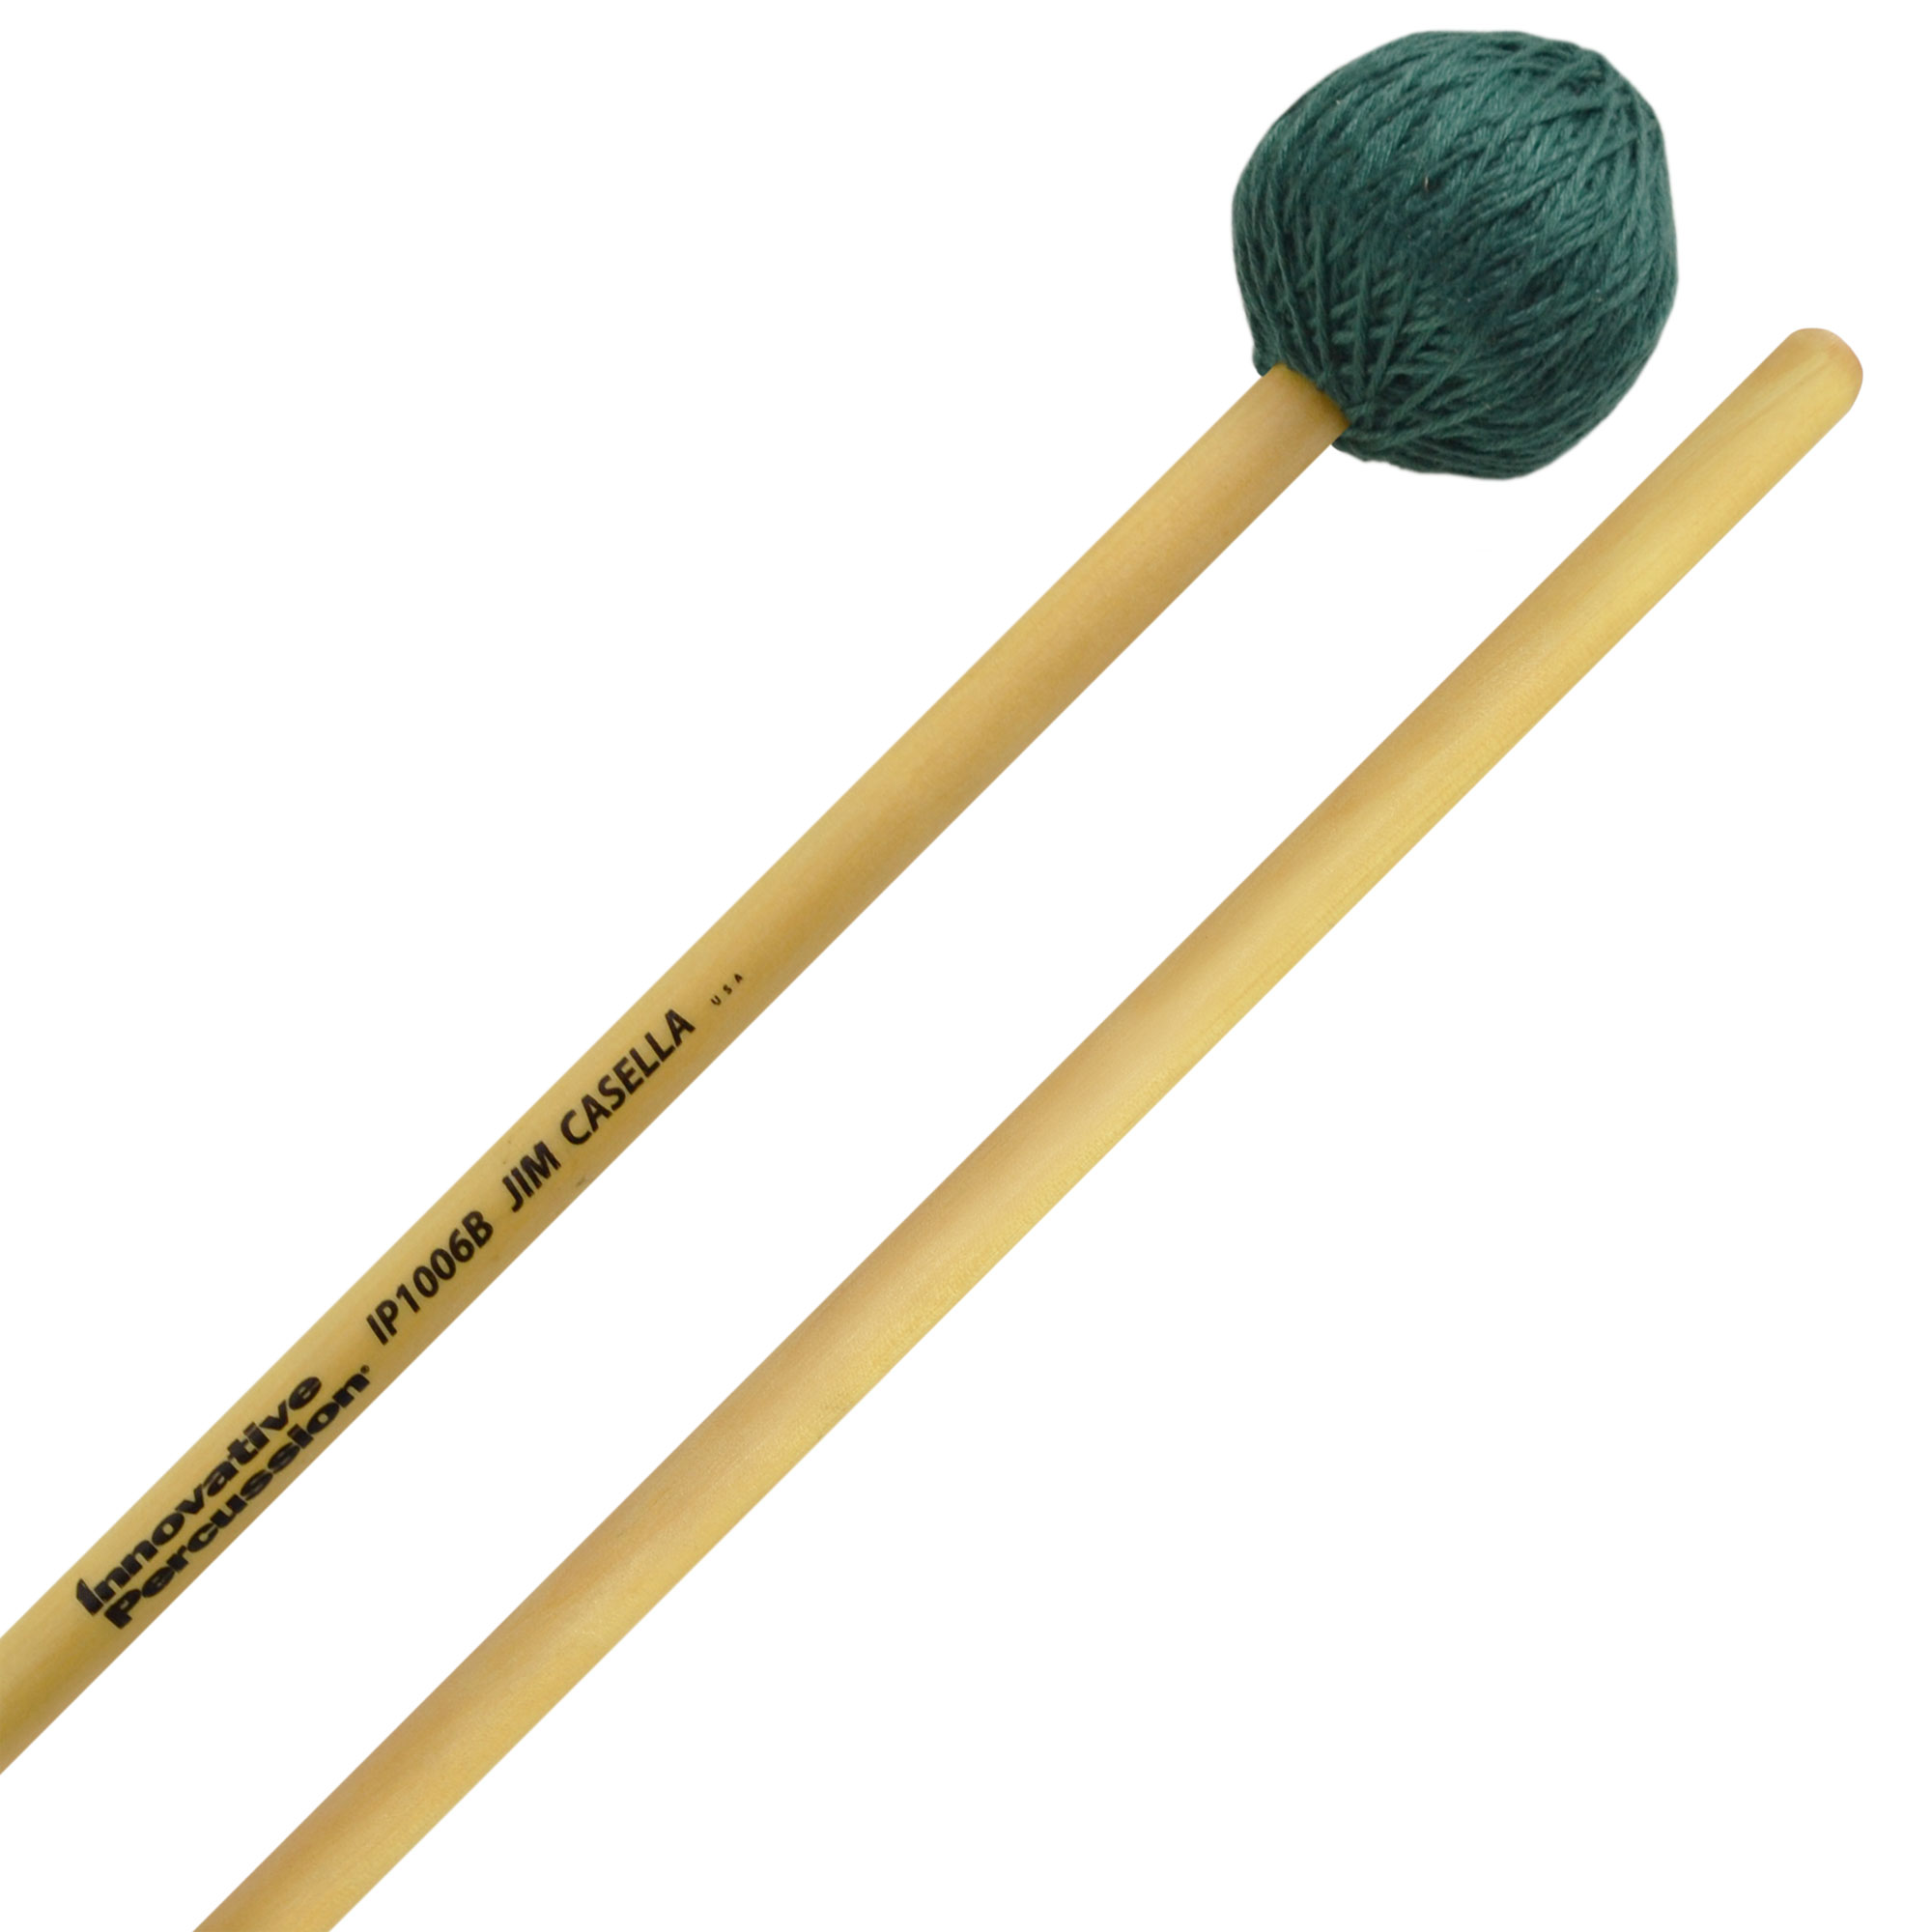 Innovative Percussion Jim Casella Hard Vibraphone Mallets with Birch Handles